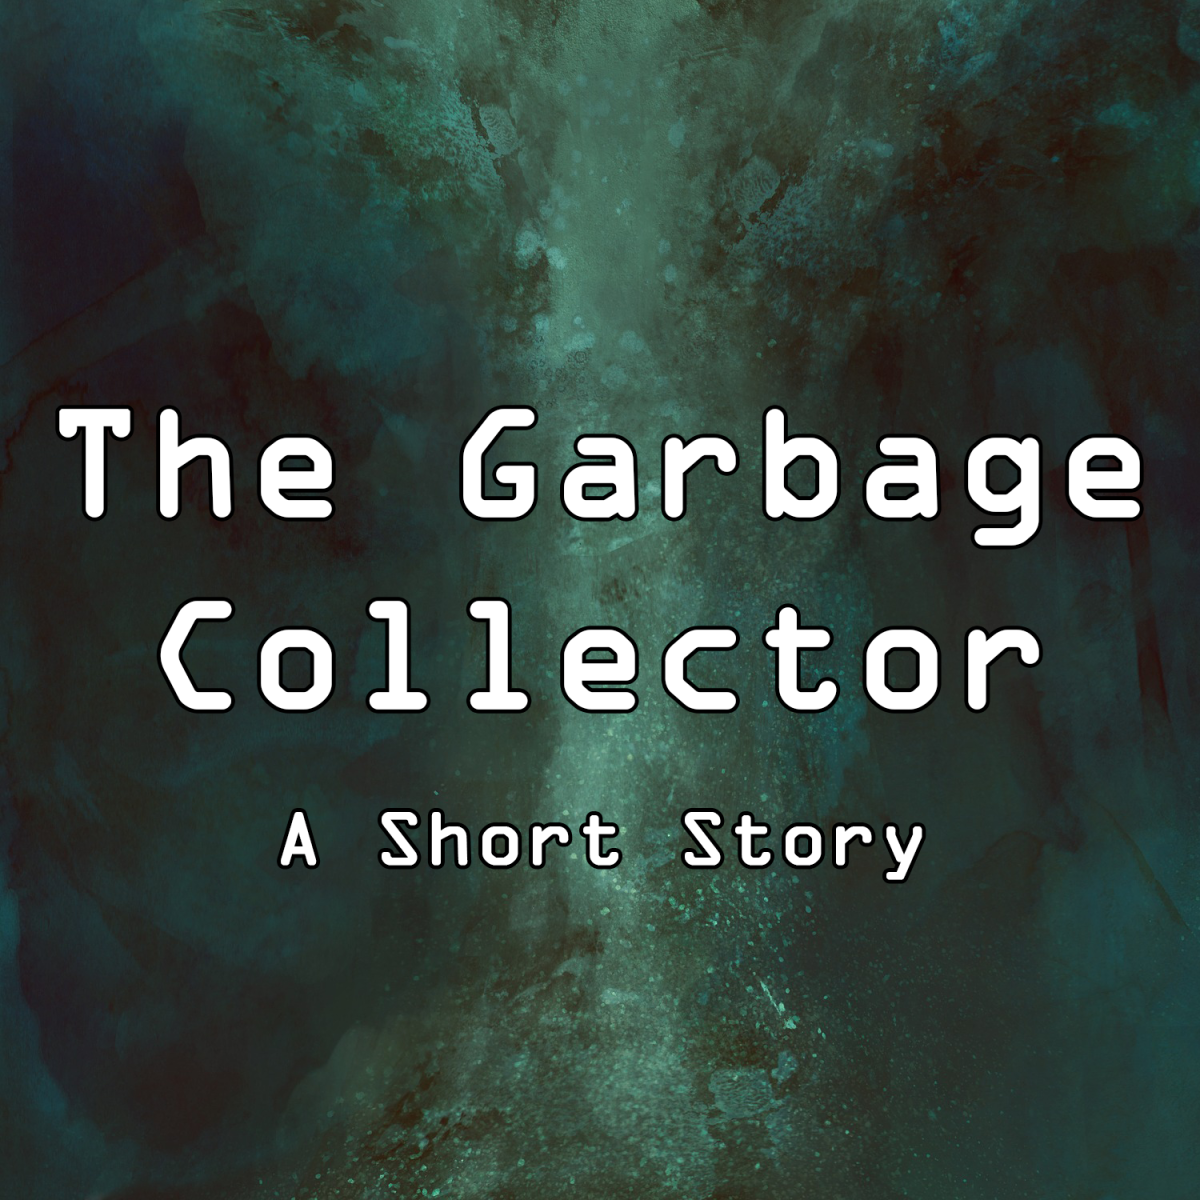 The Garbage Collector by Jennifer Wilber